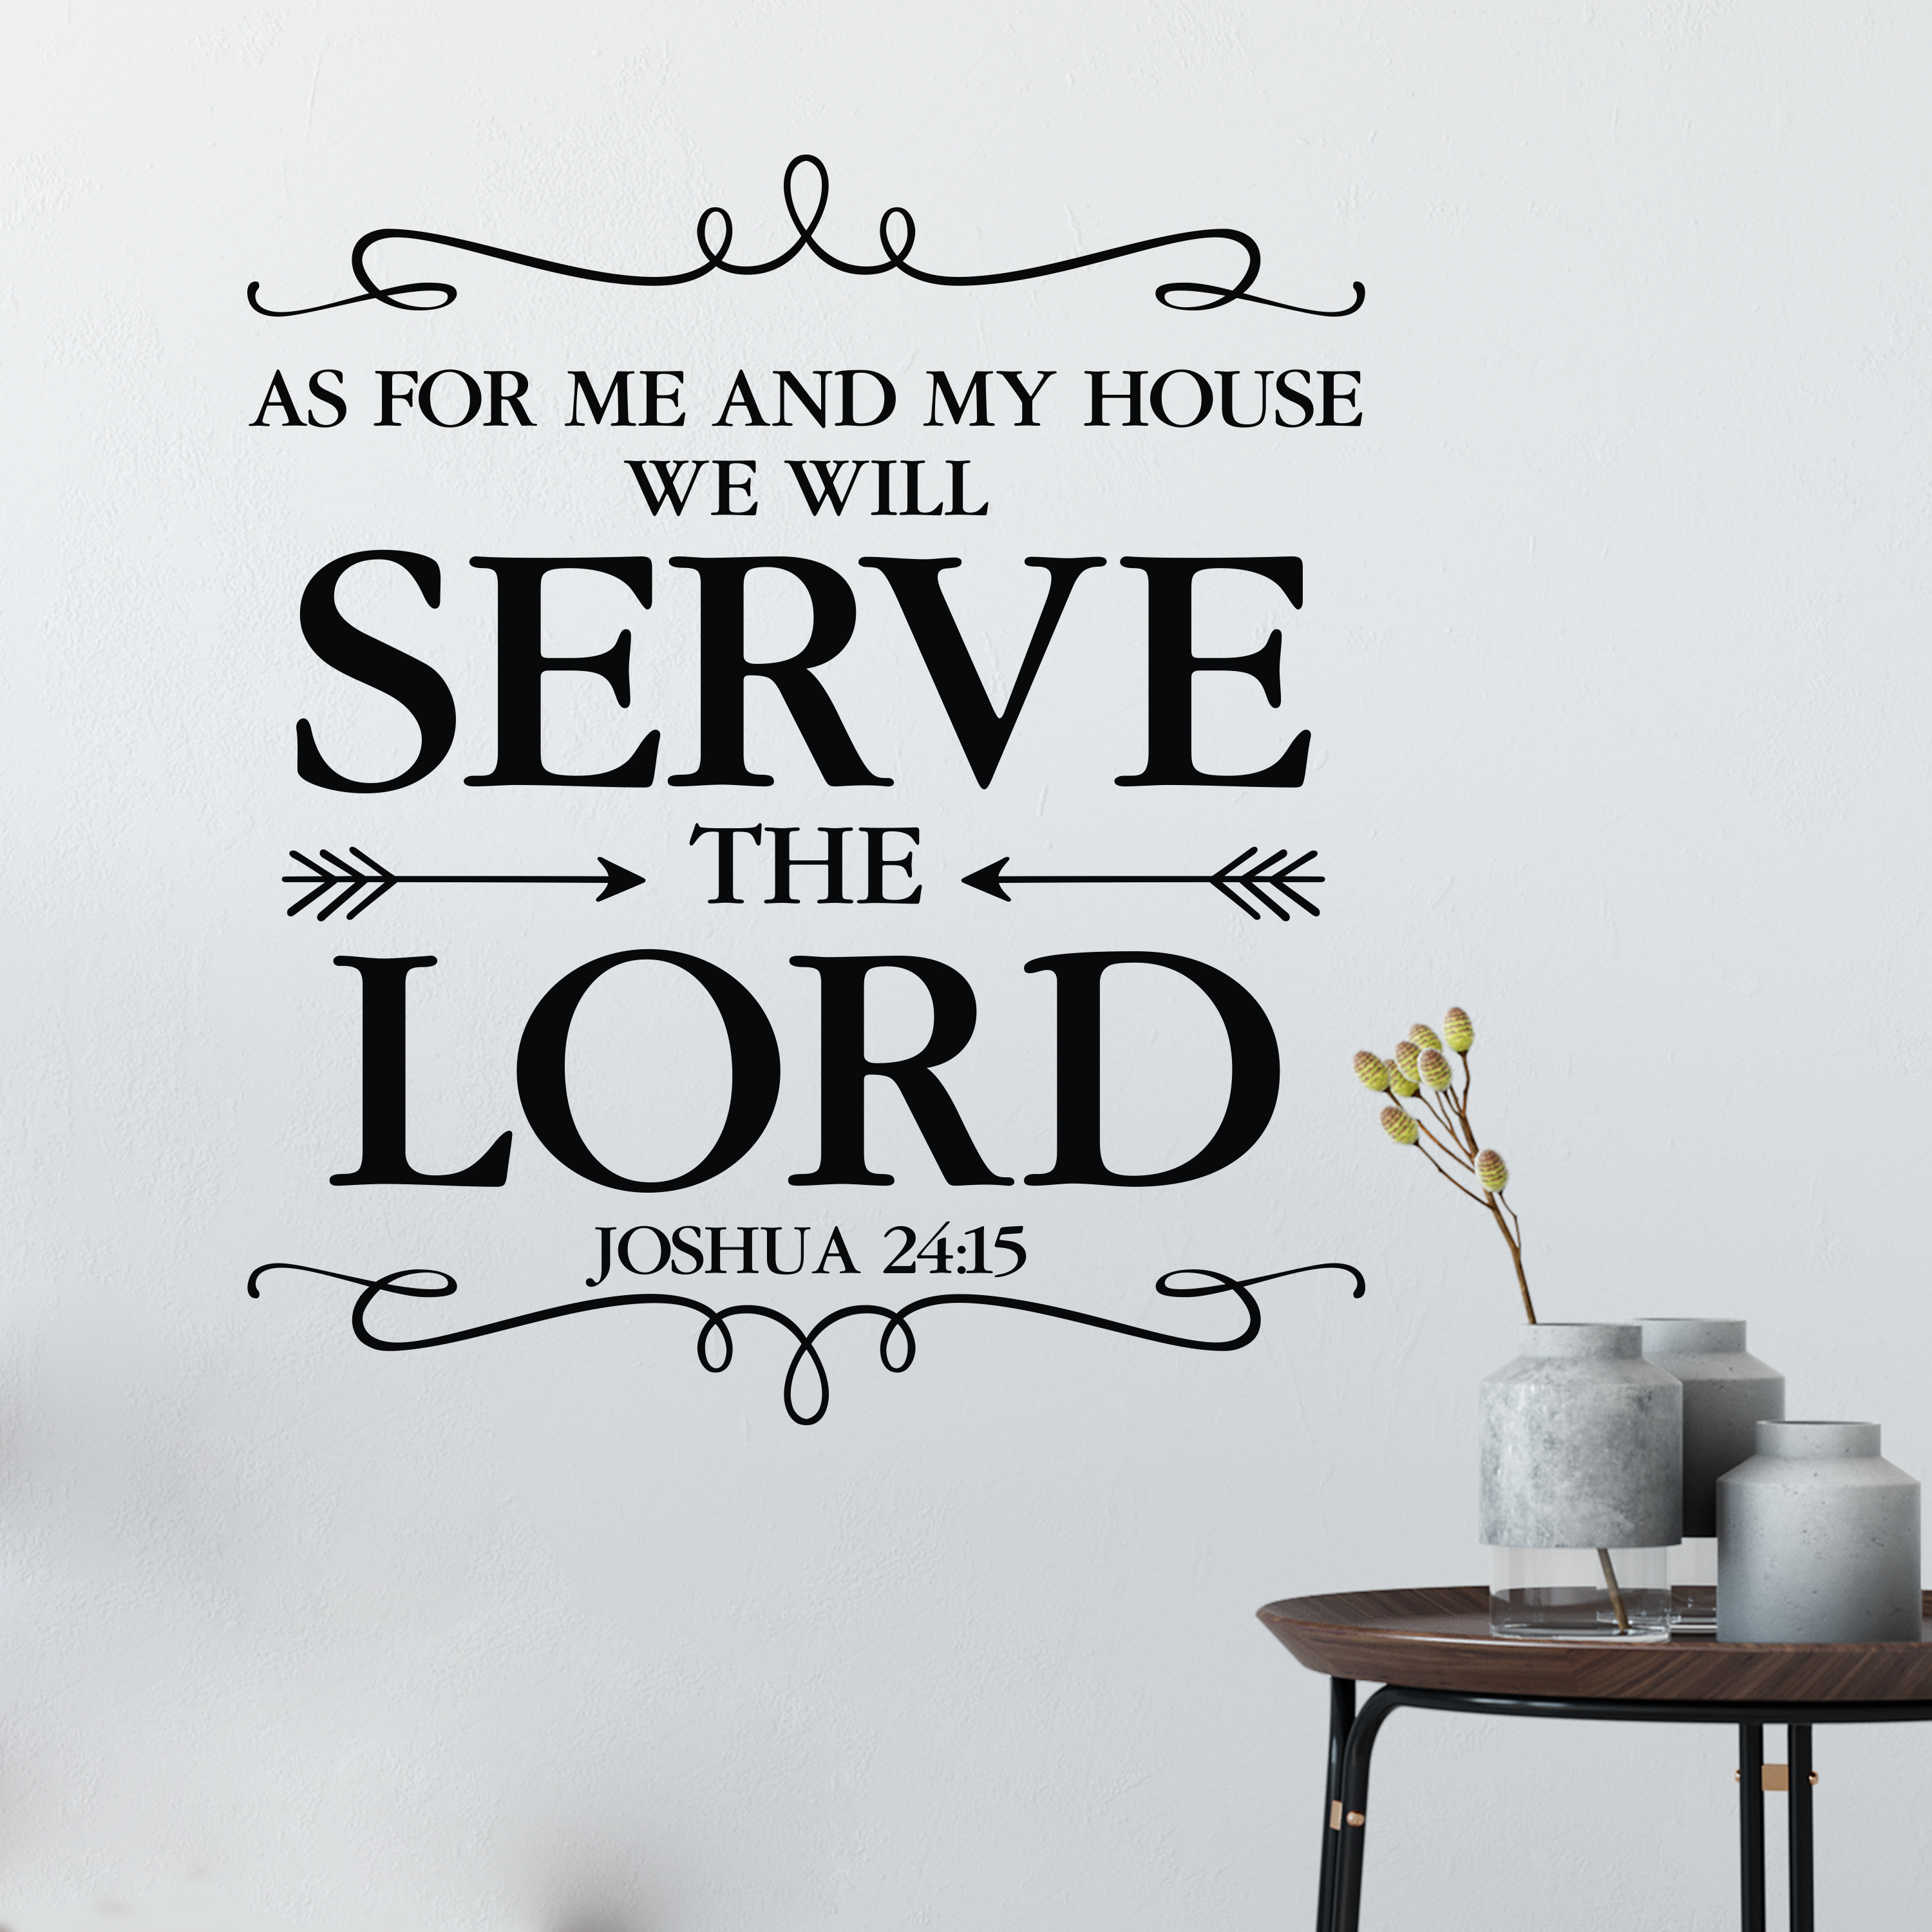 Joshua 24v15 Vinyl Wall Decal 19 As For Me And My House We Will Serve